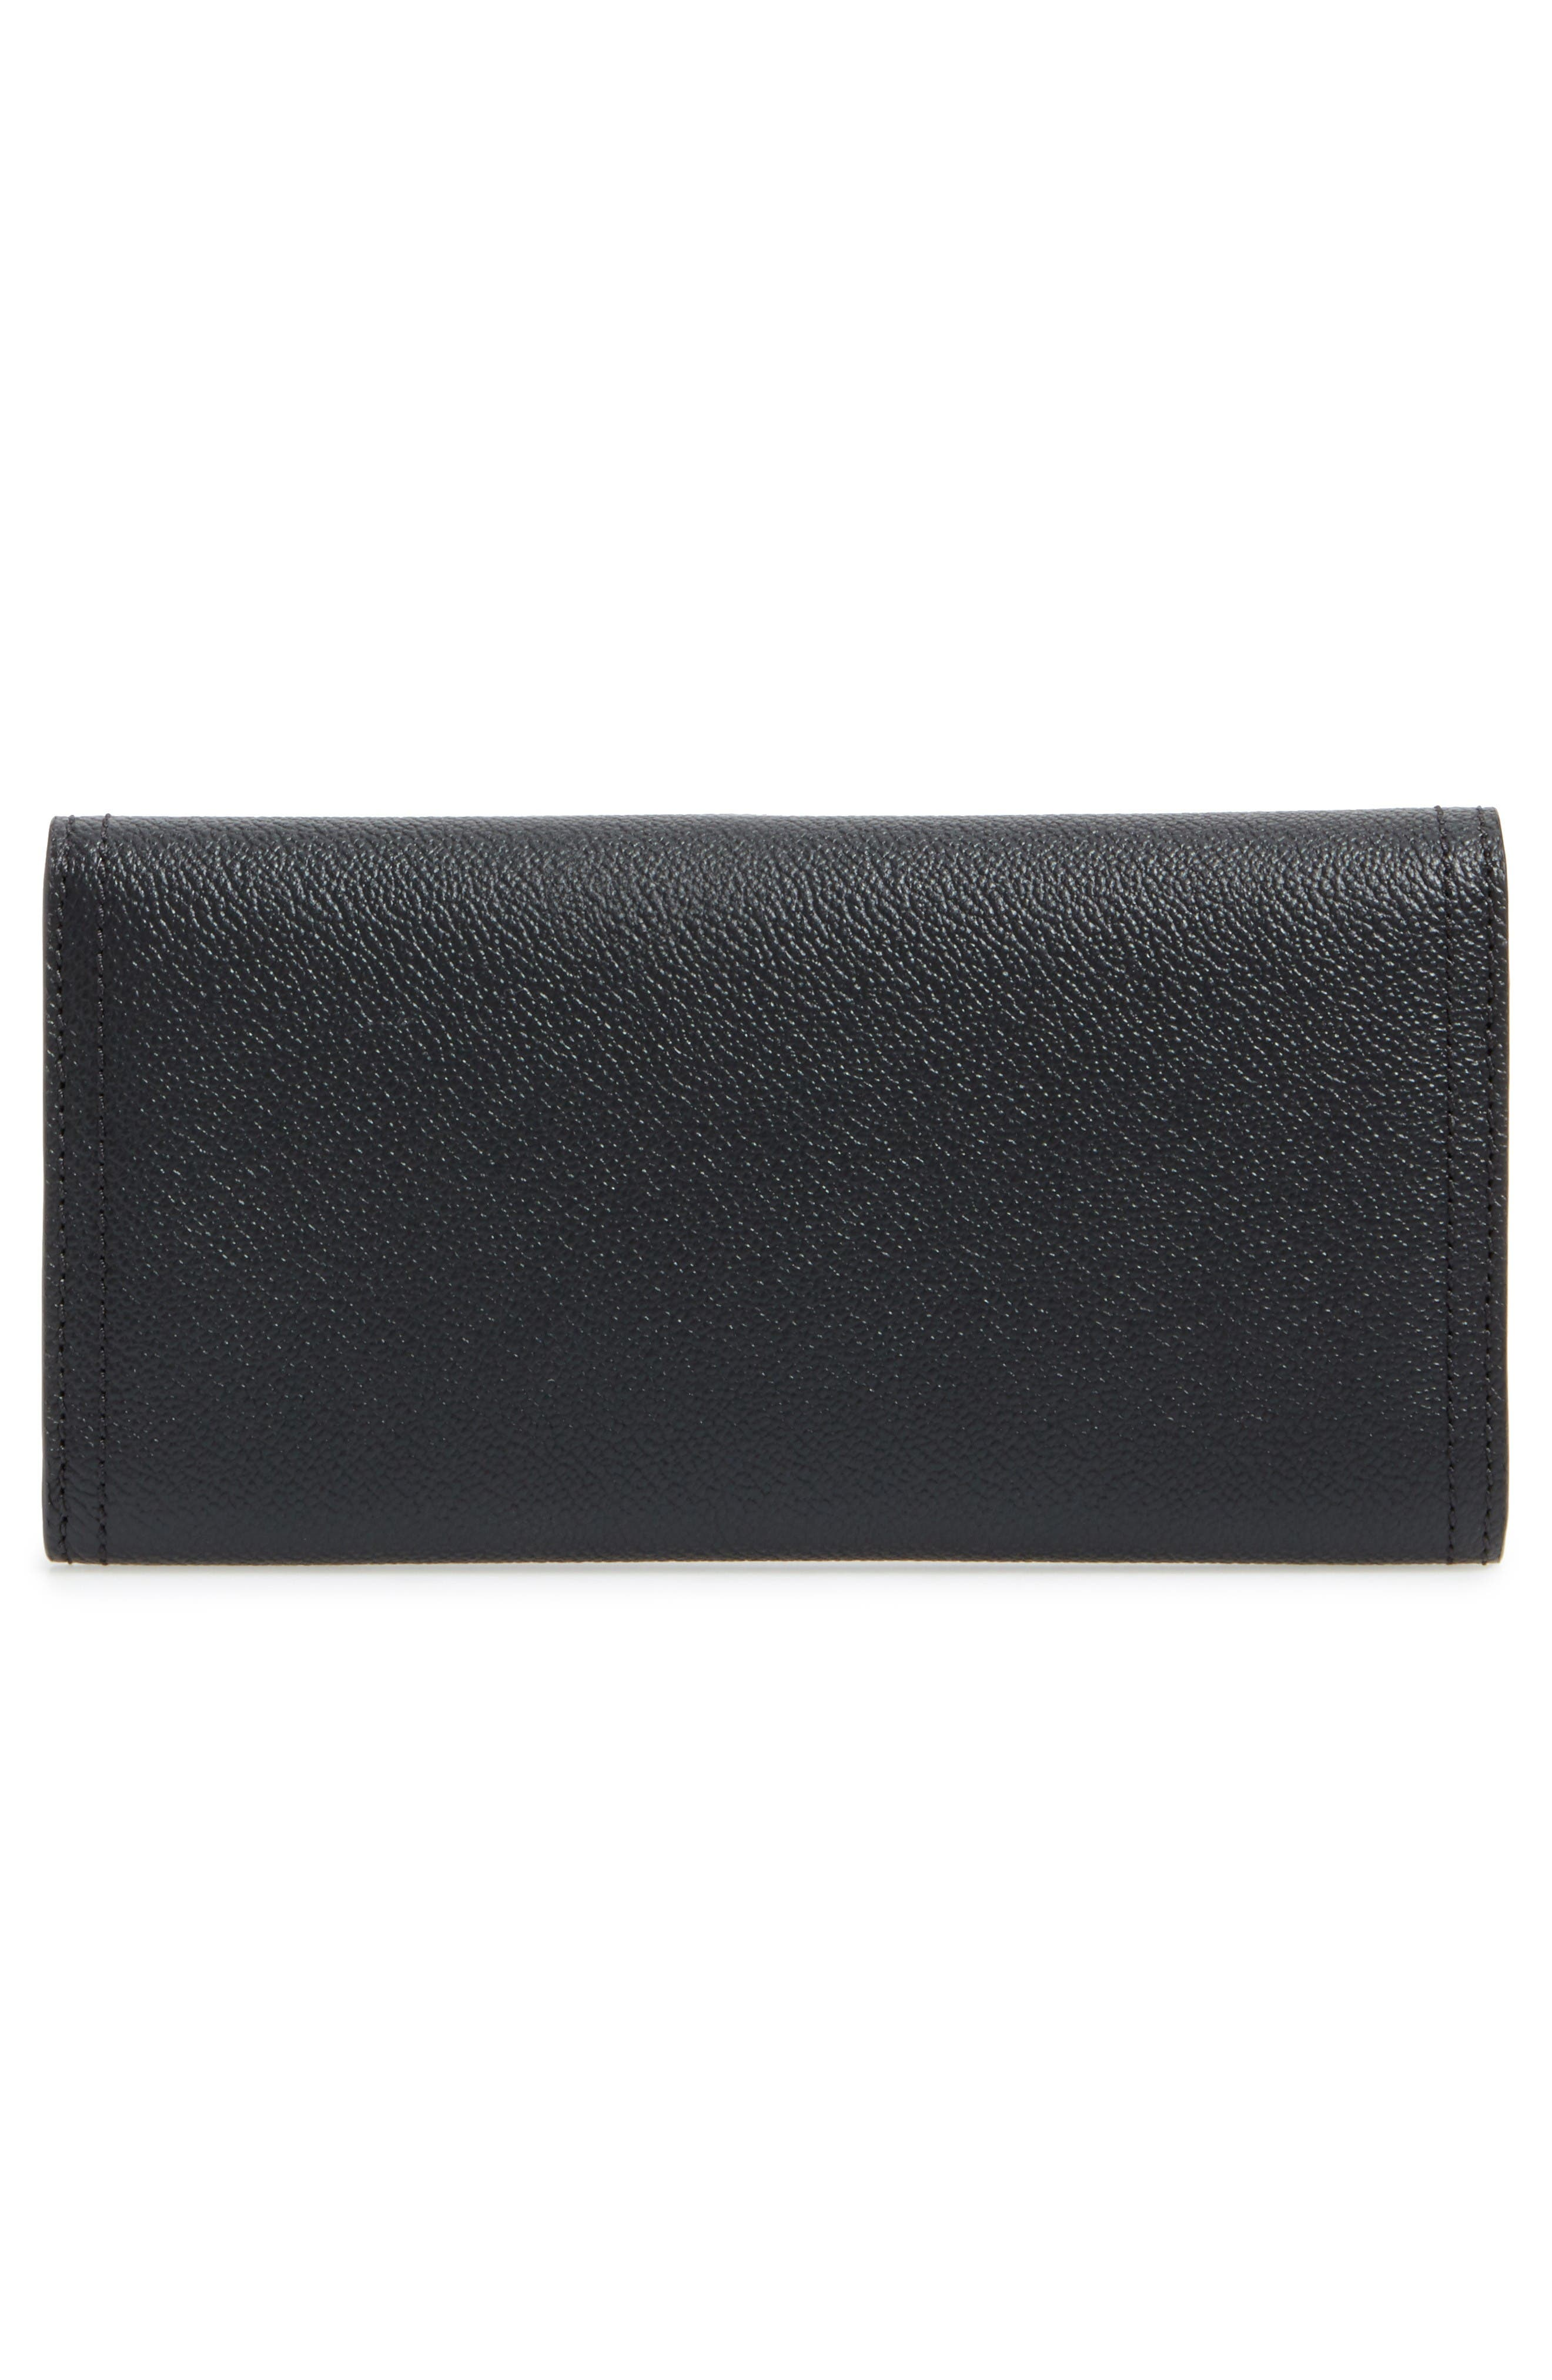 Alternate Image 3  - Burberry Ashton Leather Continental Wallet